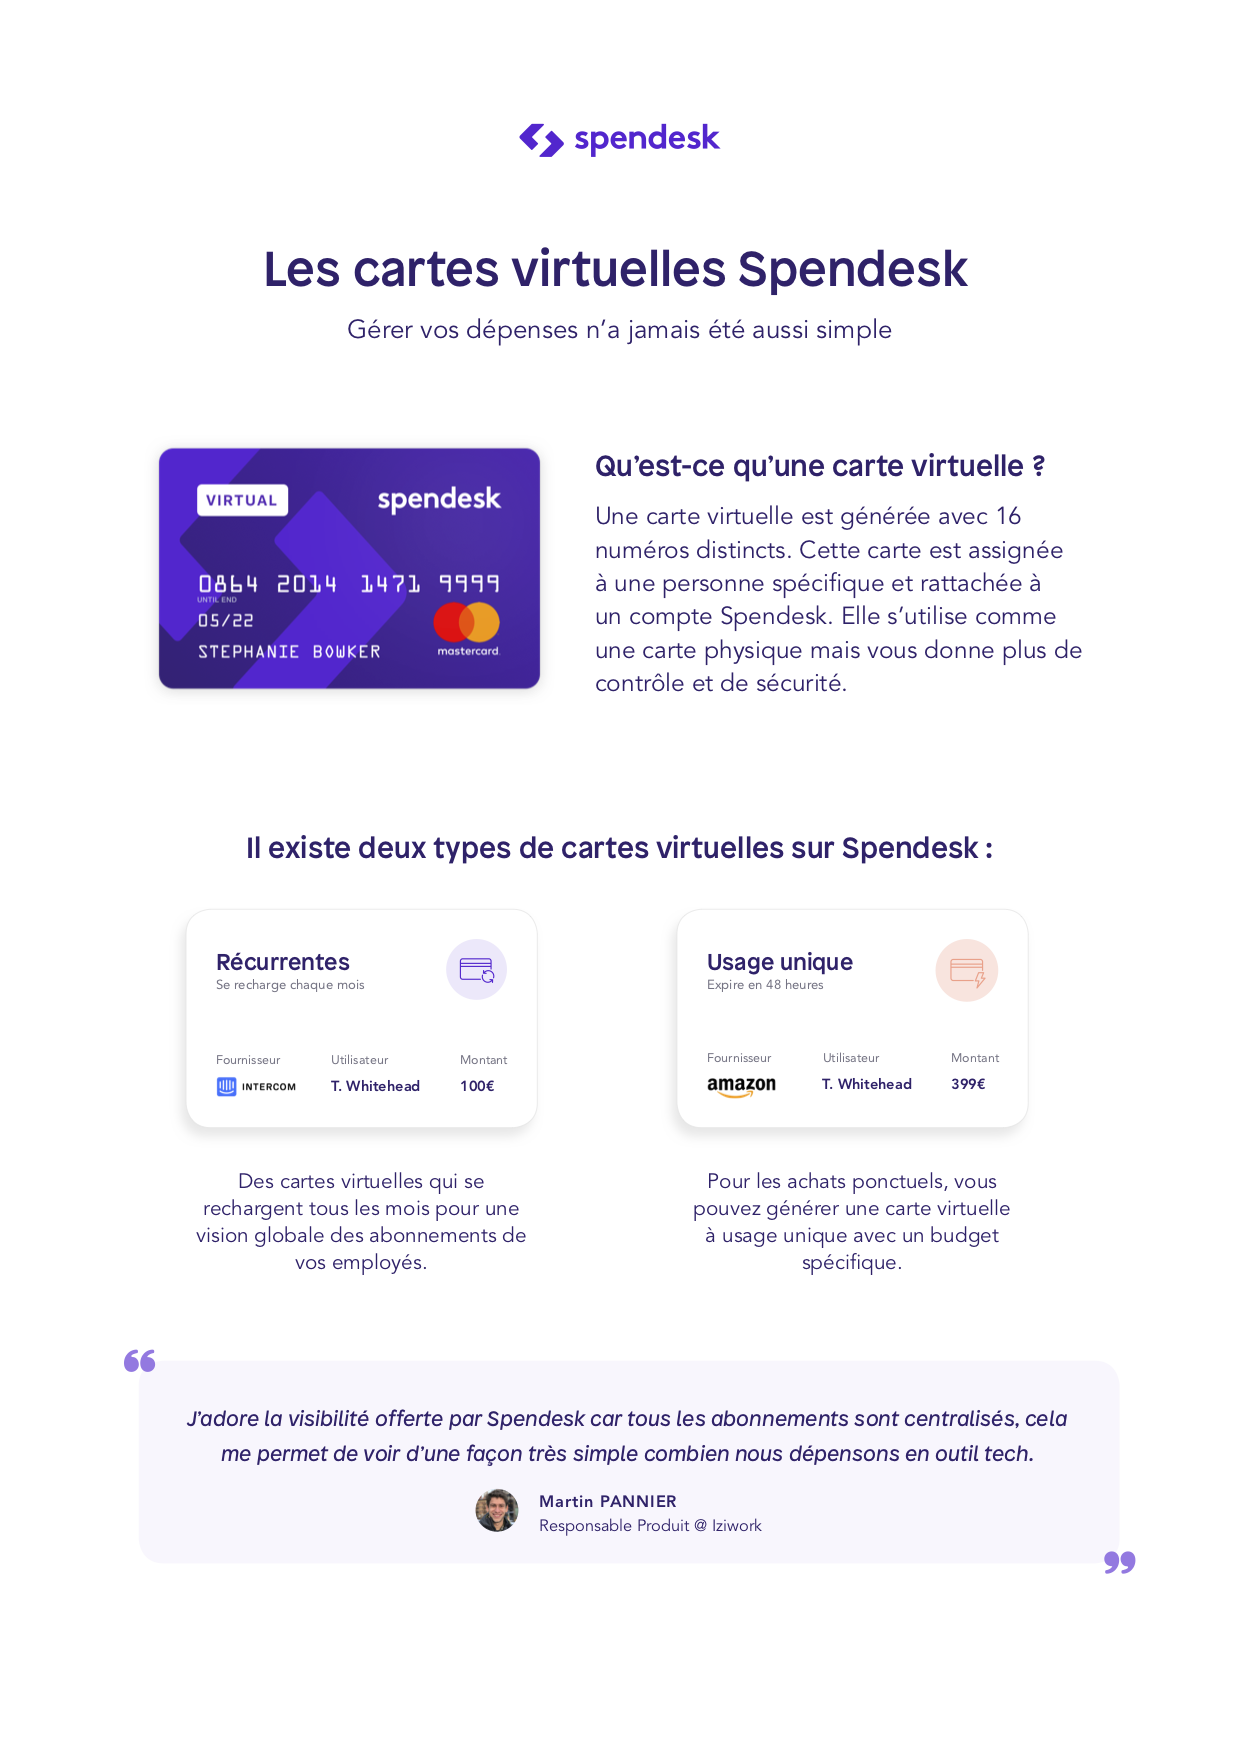 SPENDESK_VirtualCards_FR p1